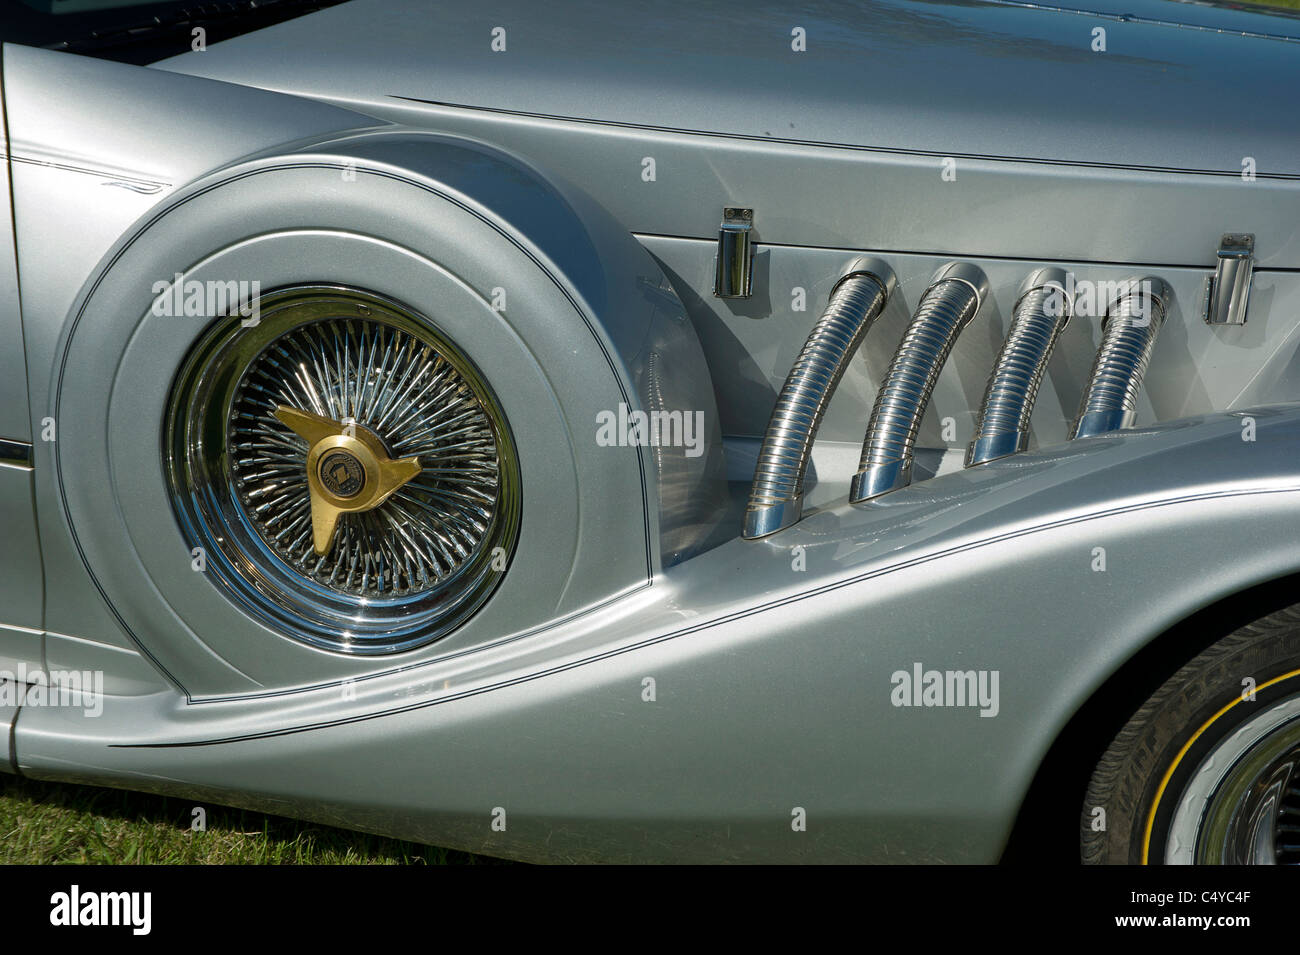 TheZIMMER Golden Spirit motor car spare wheel cover front wing - Stock Image